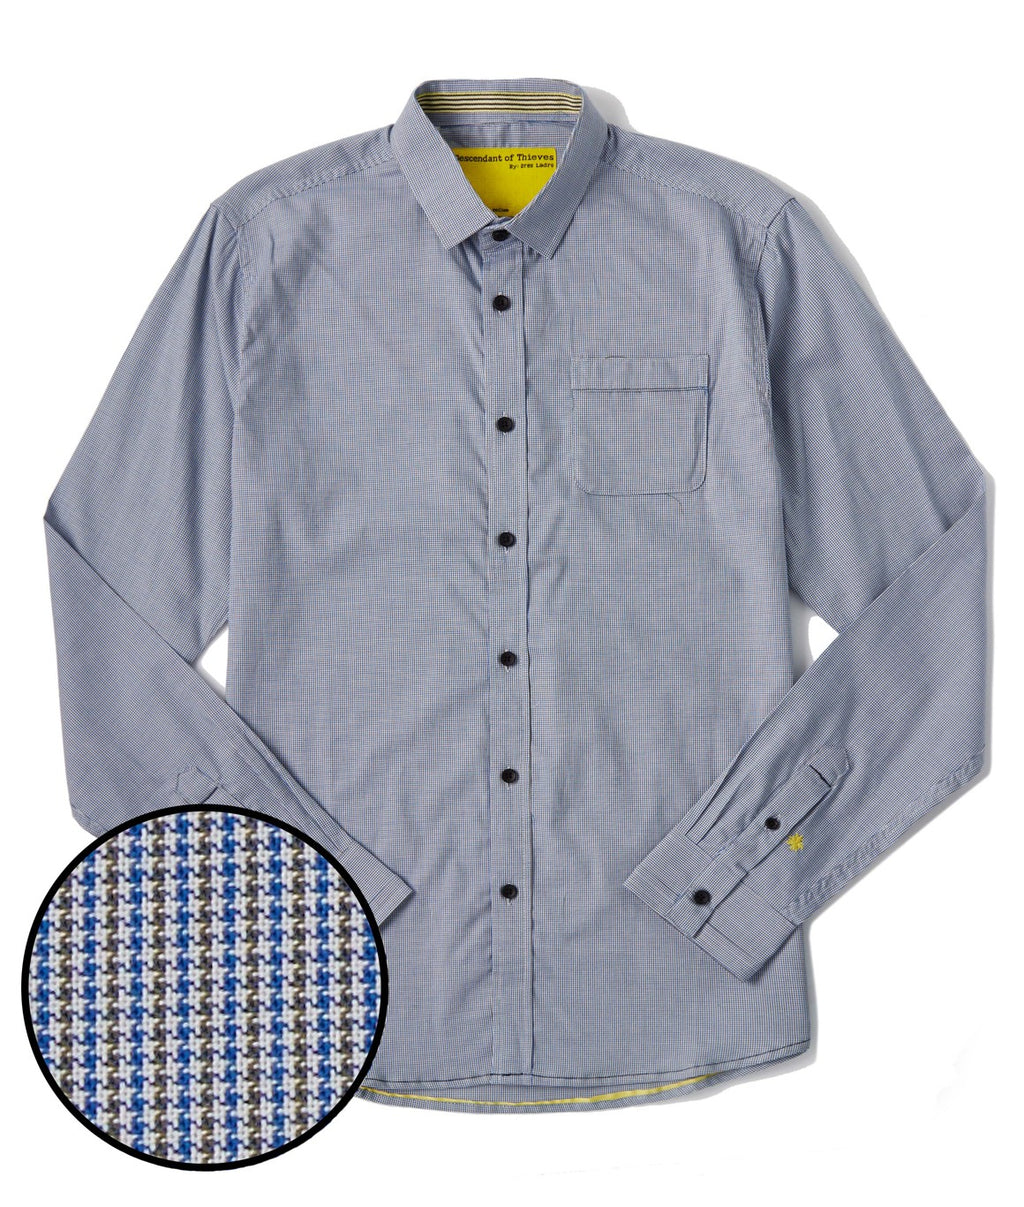 Descendant of Thieves Micro Houndstooth LS Shirt - BLUE/GREEN